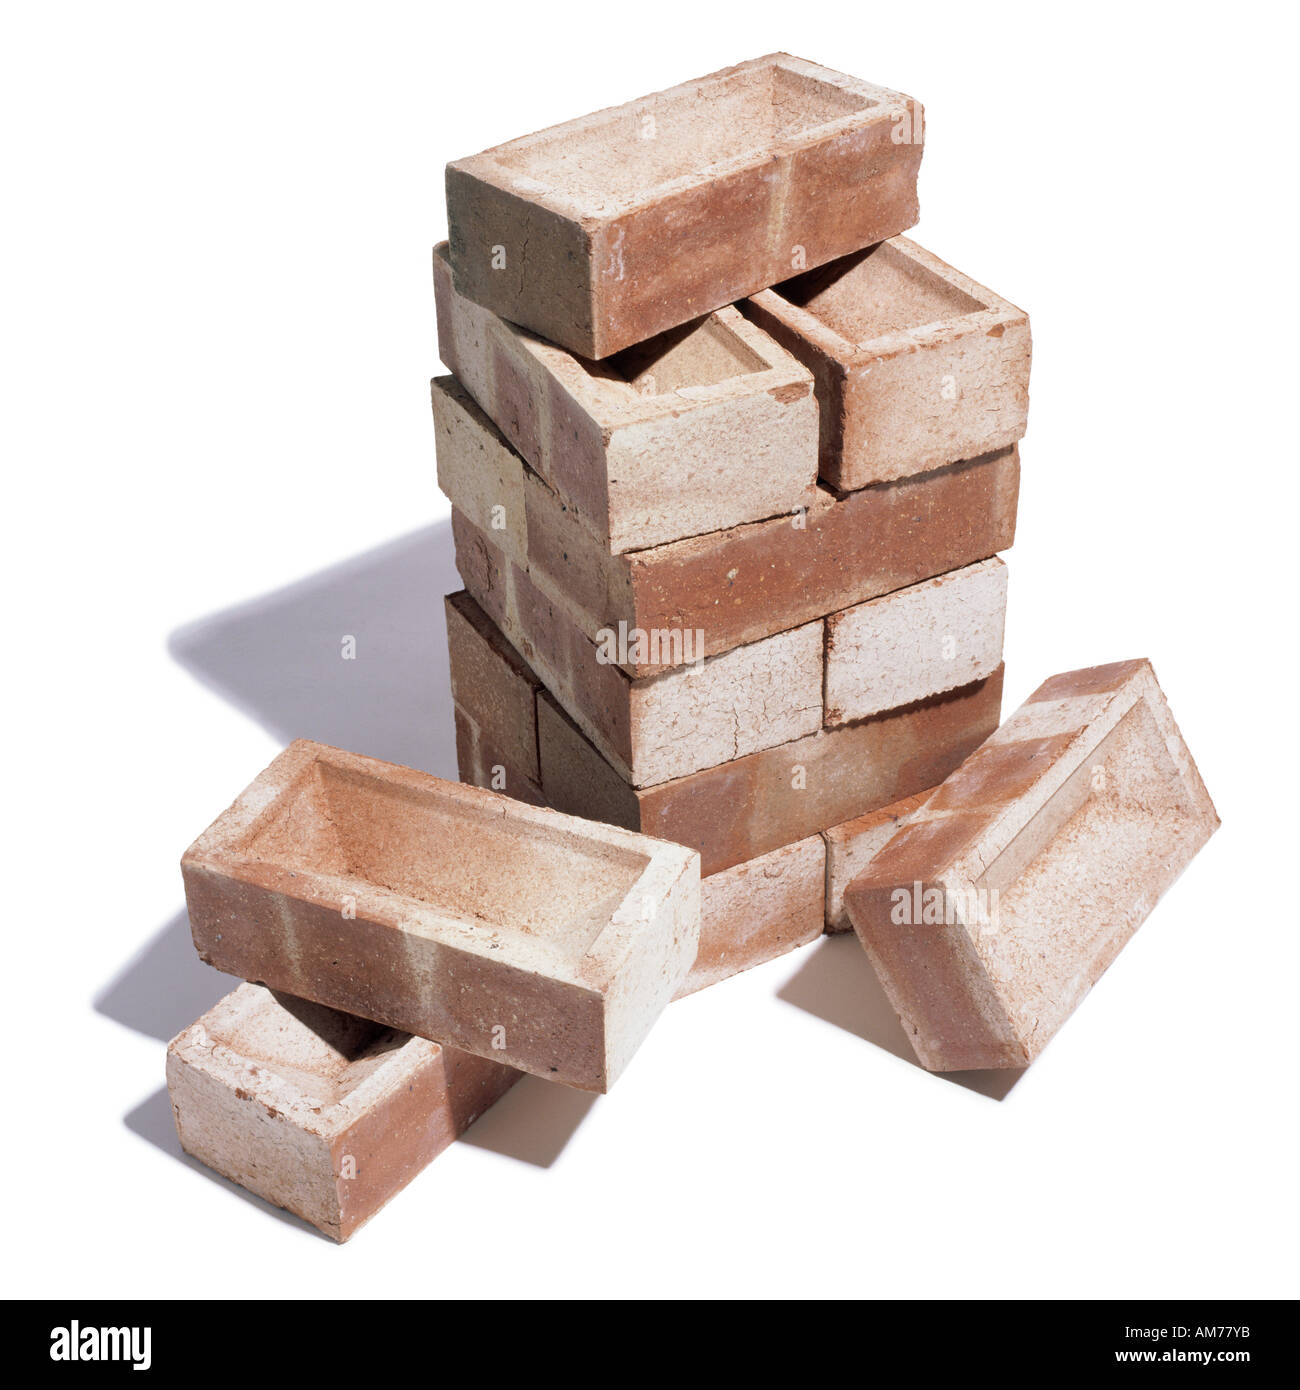 A pile of bricks - Stock Image